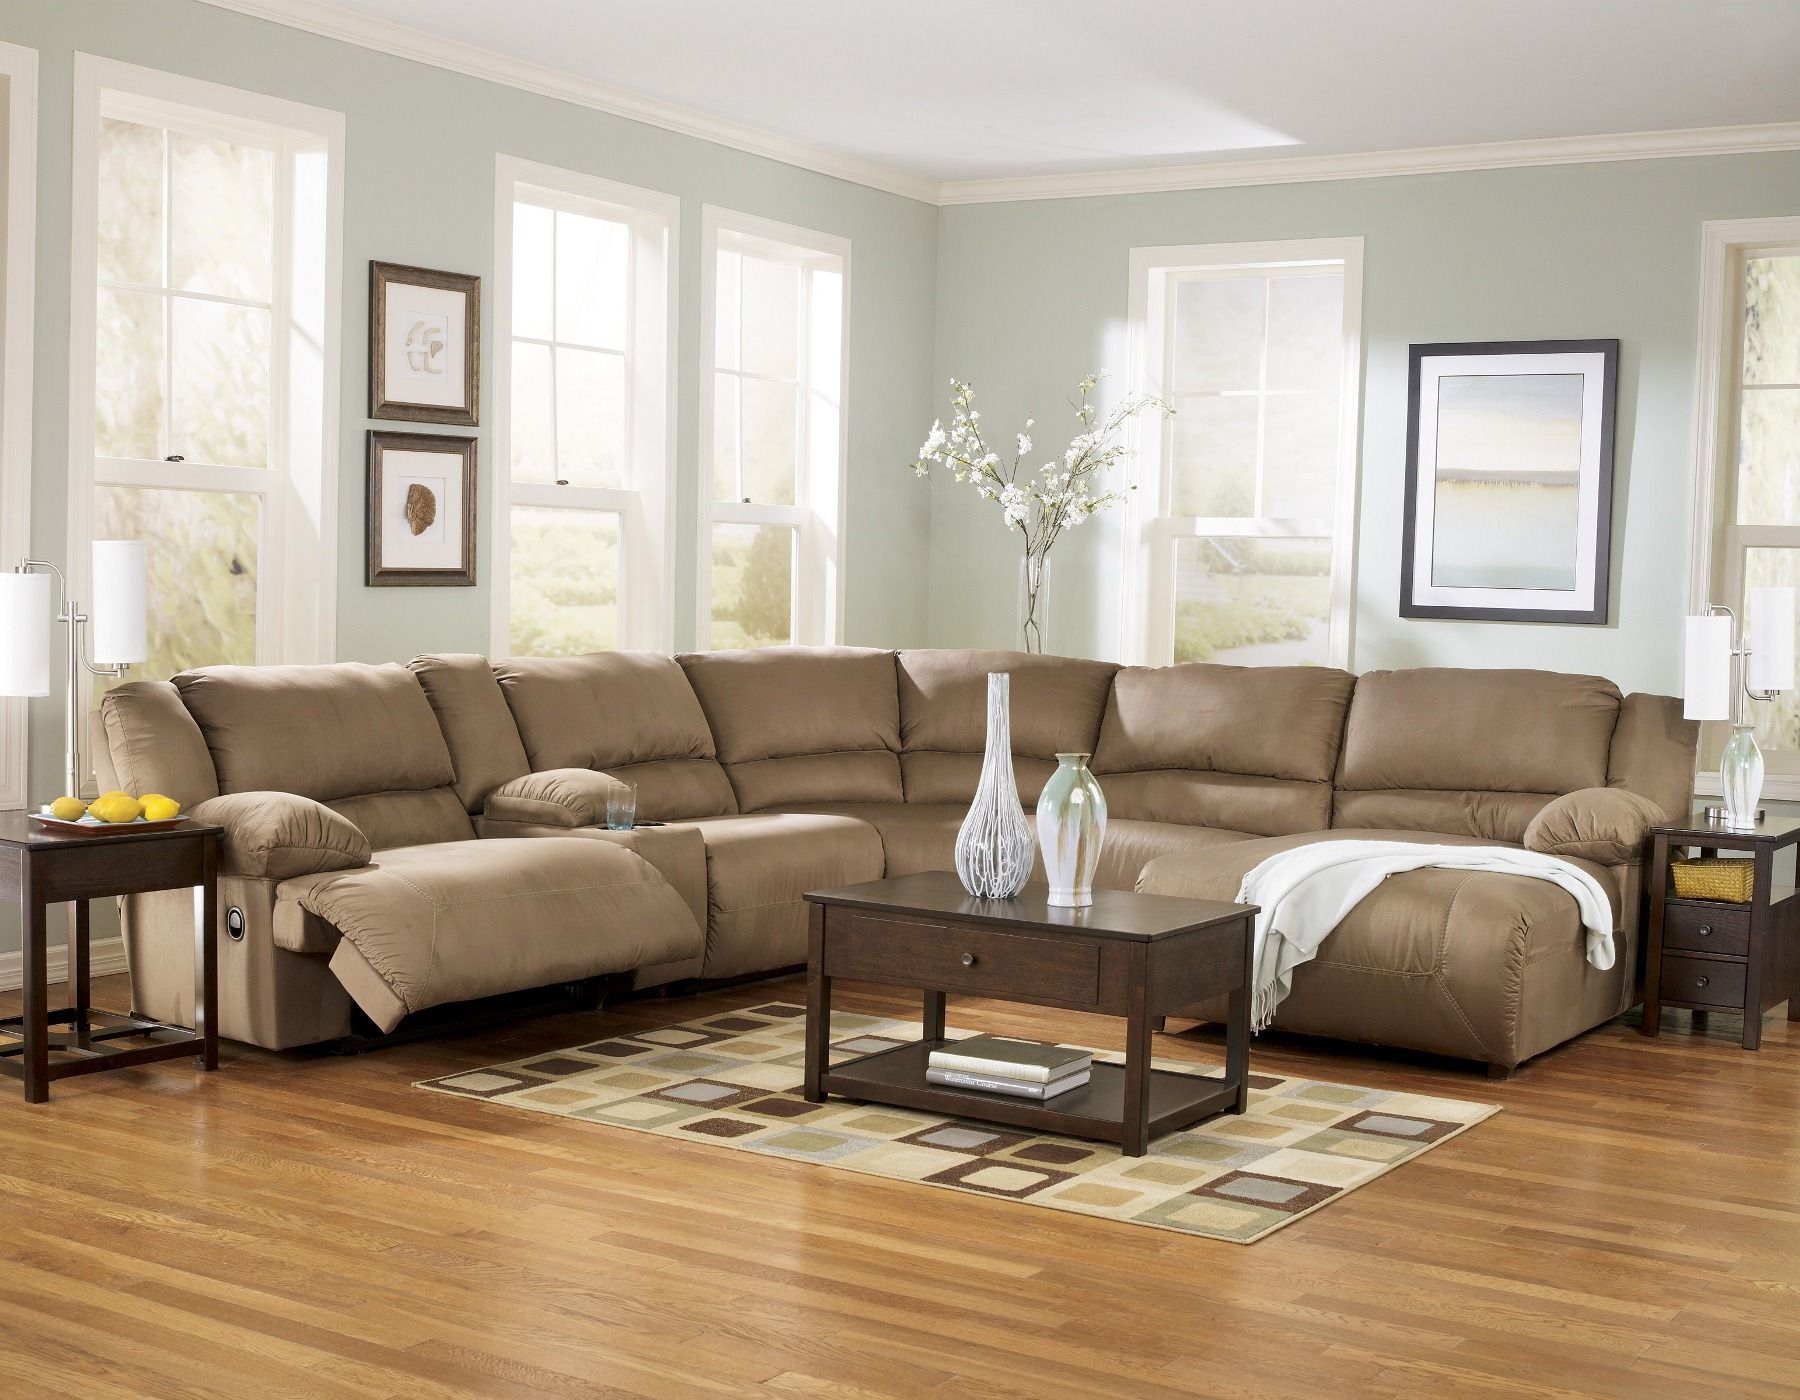 Best Awesome Ashley Furniture Living Room Ideas With Wooden 400 x 300